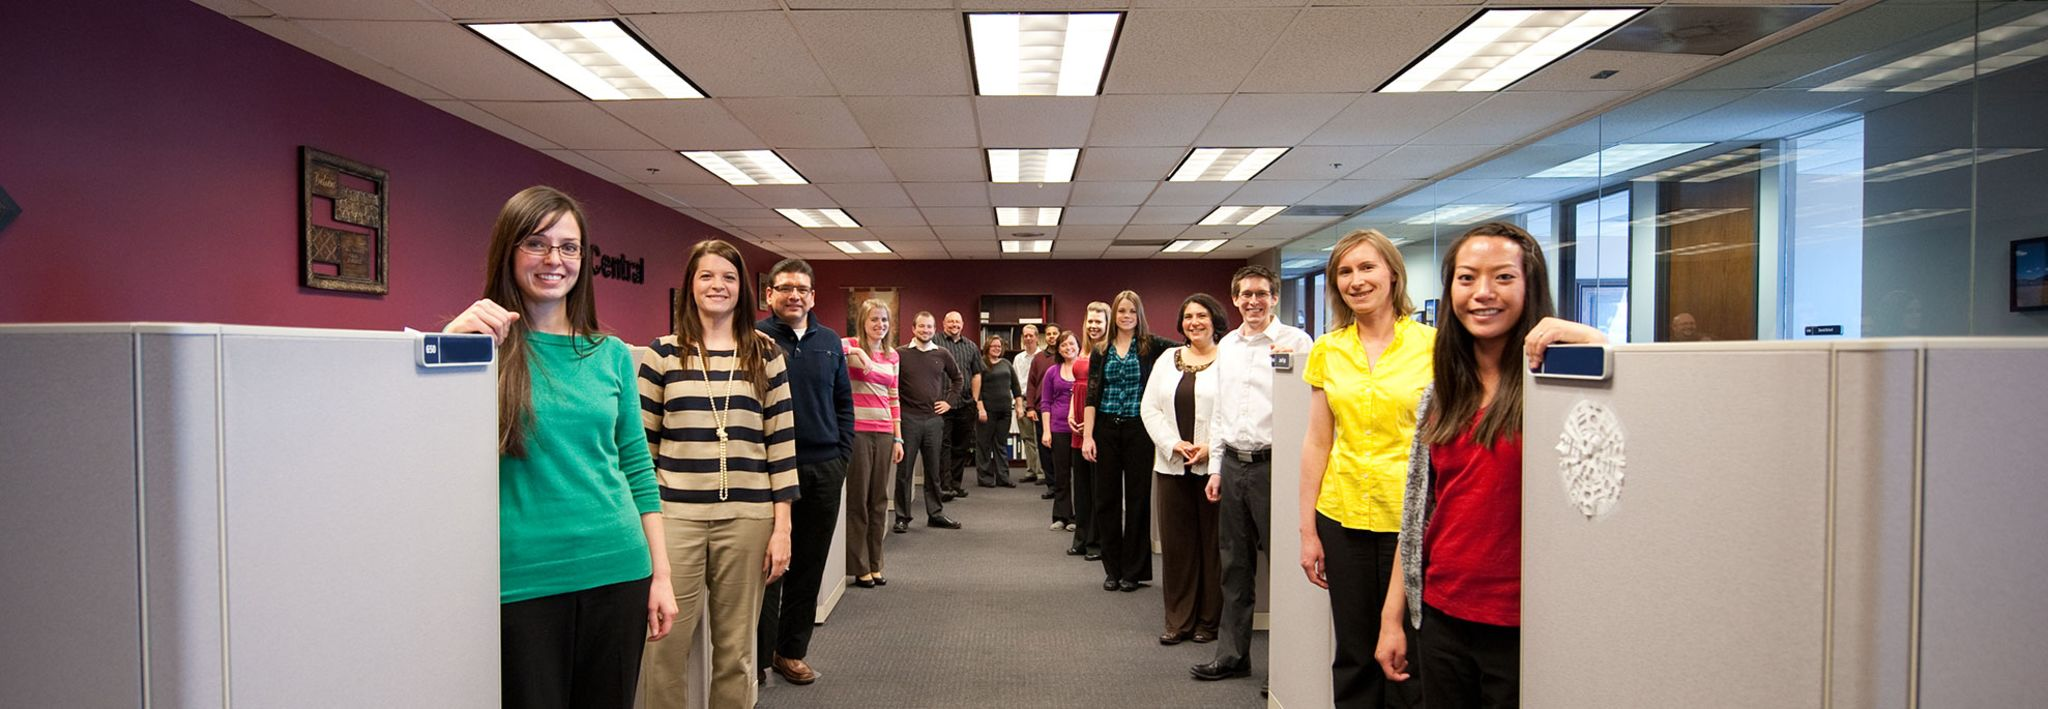 Picture of CCU employees.